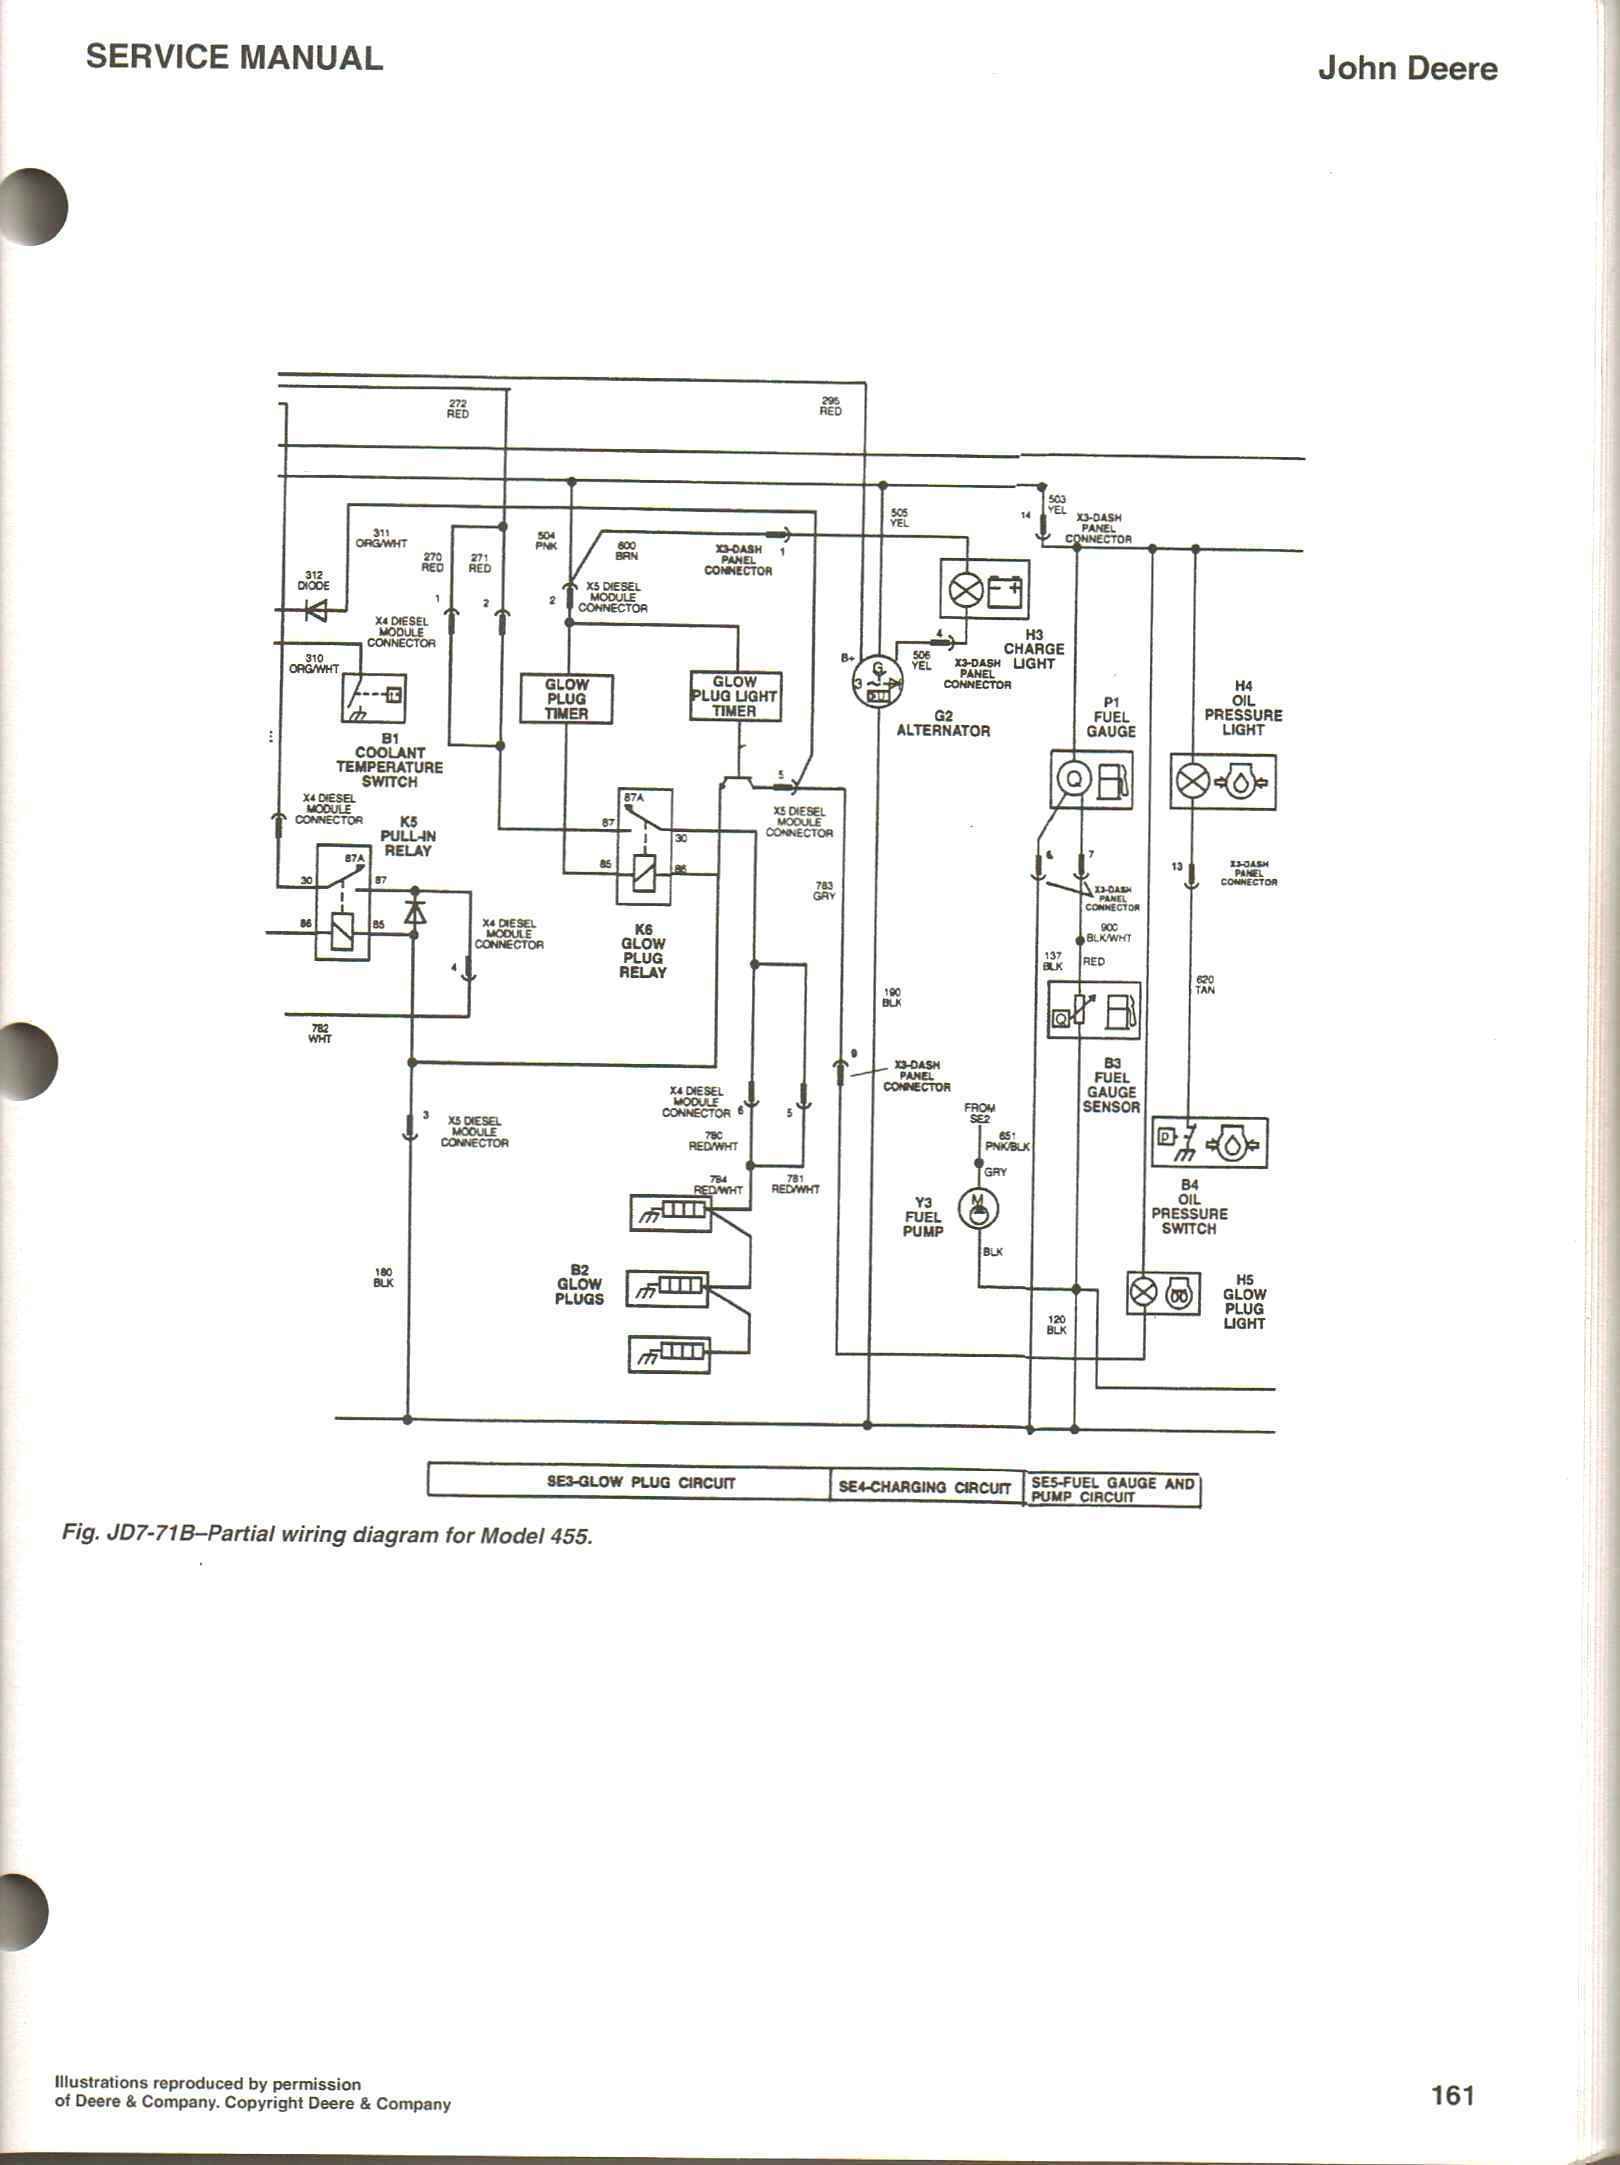 Gator 625i Wiring Diagram | Wiring Diagram on